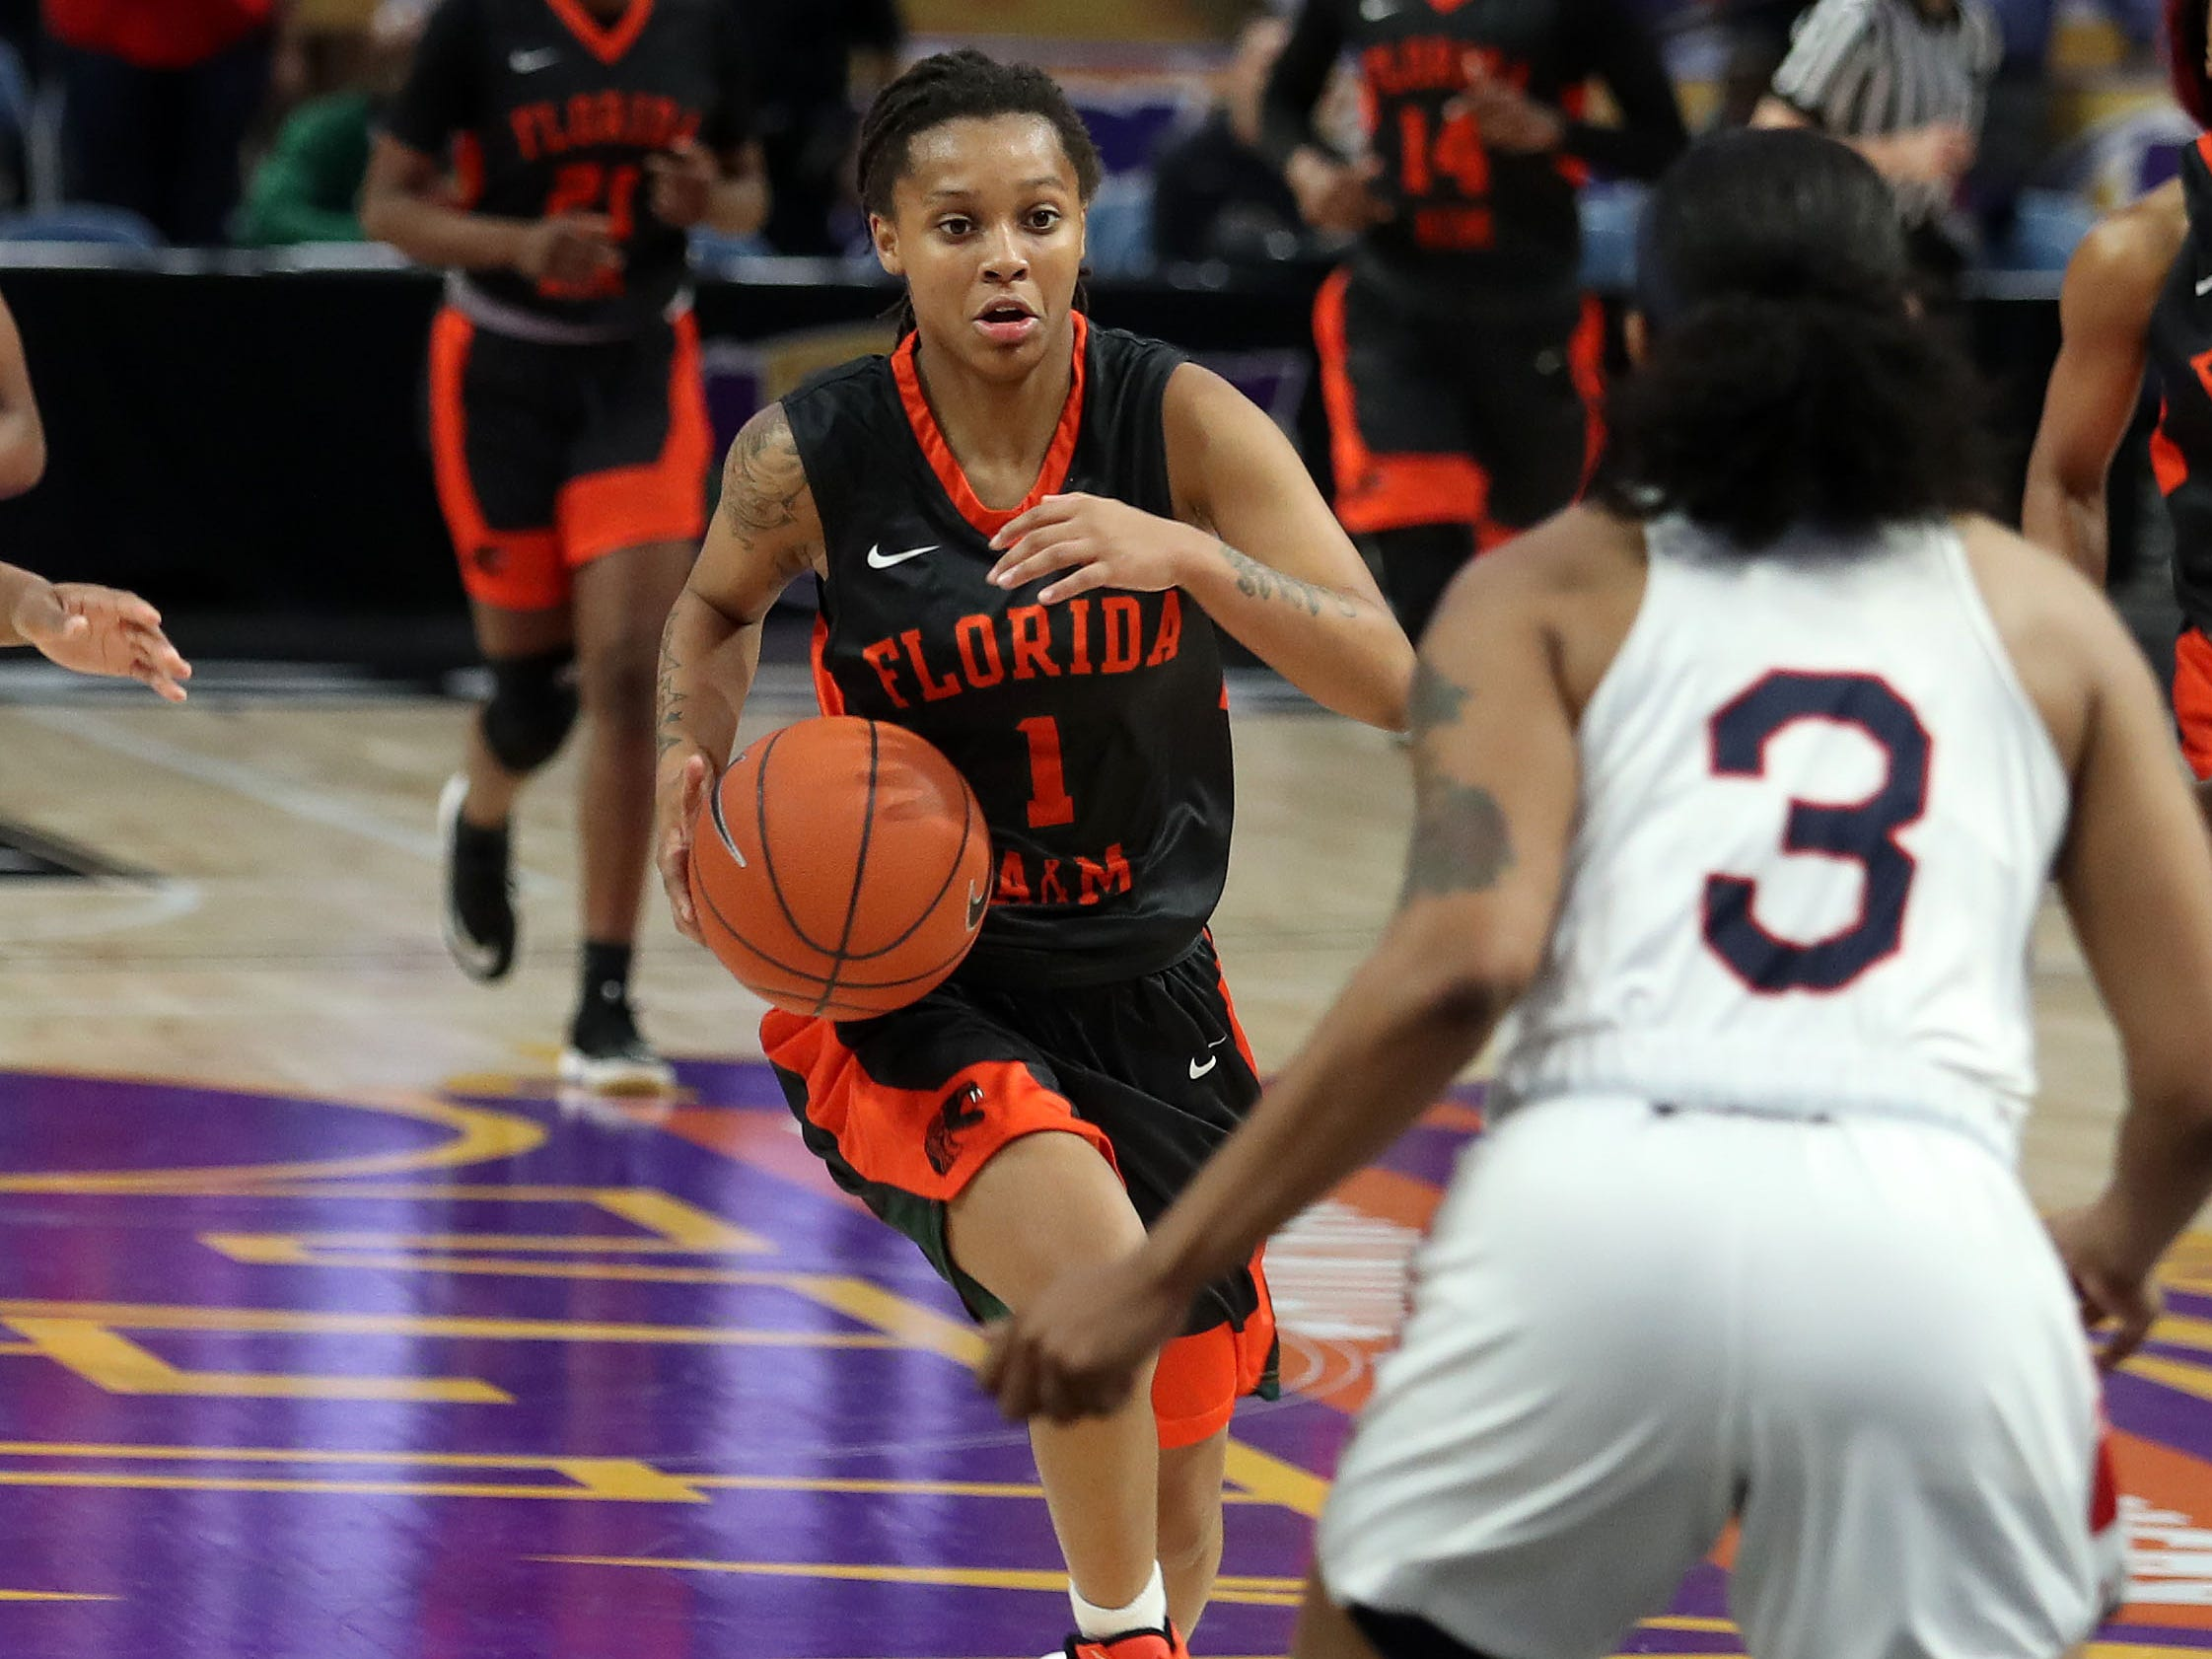 MEAC All-Rookie guard Mya Moye dribbles the ball against Asia McCants (3) during FAMU's first-round MEAC tournament game versus Howard.